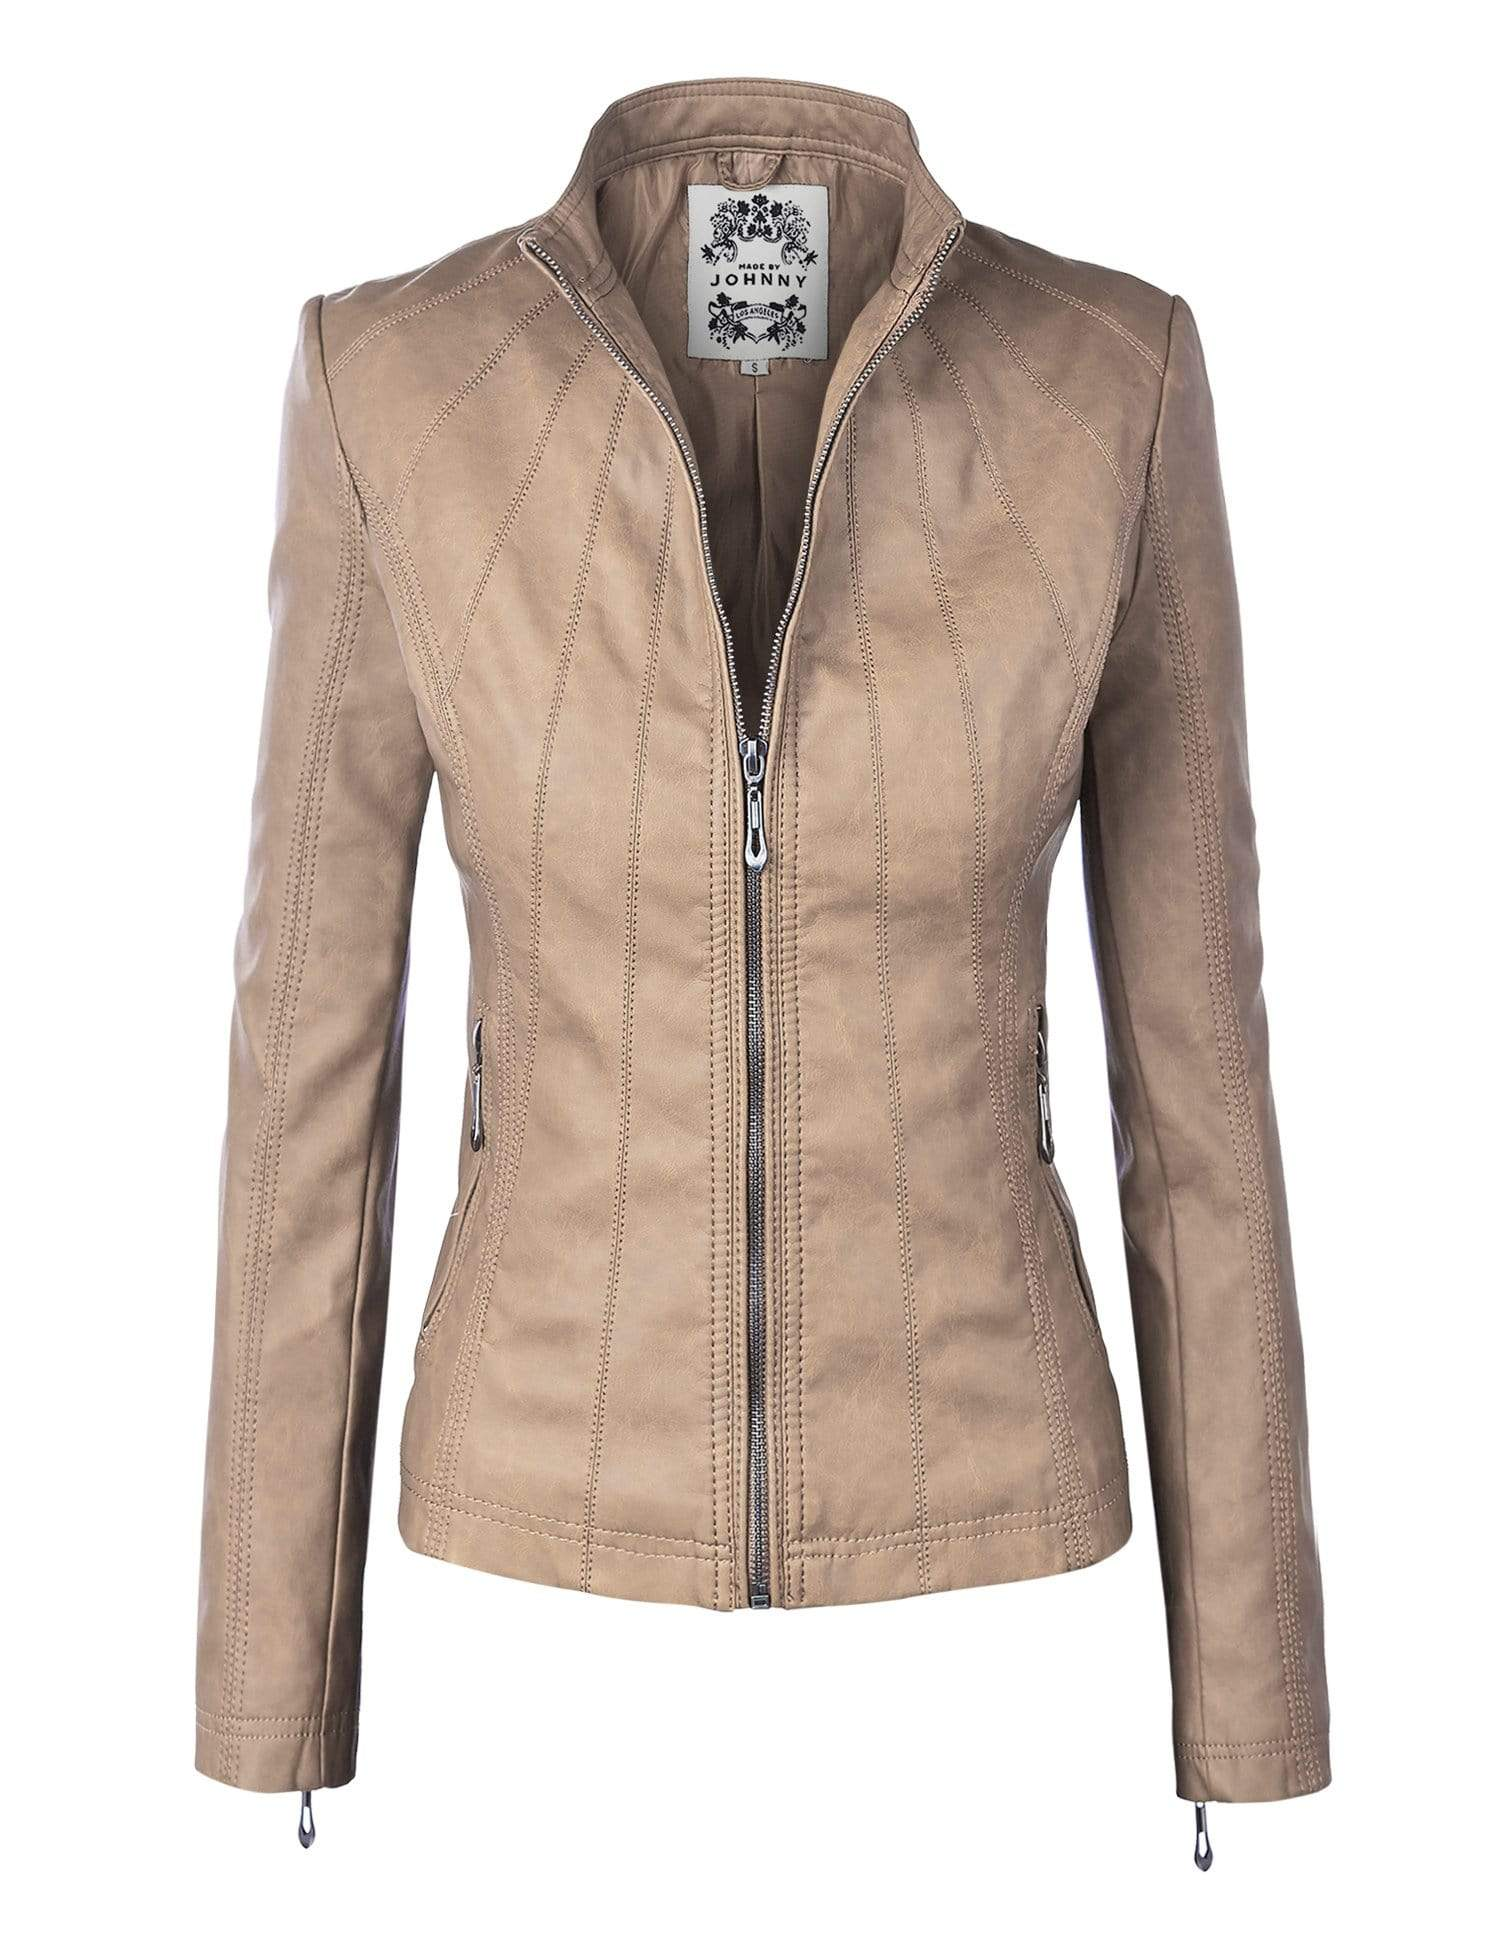 DAILYHAUTE Women's jacket KHAKI / XS Made By Johnny MBJ Womens Faux Leather Zip Up Moto Biker Jacket with Stitching Detail